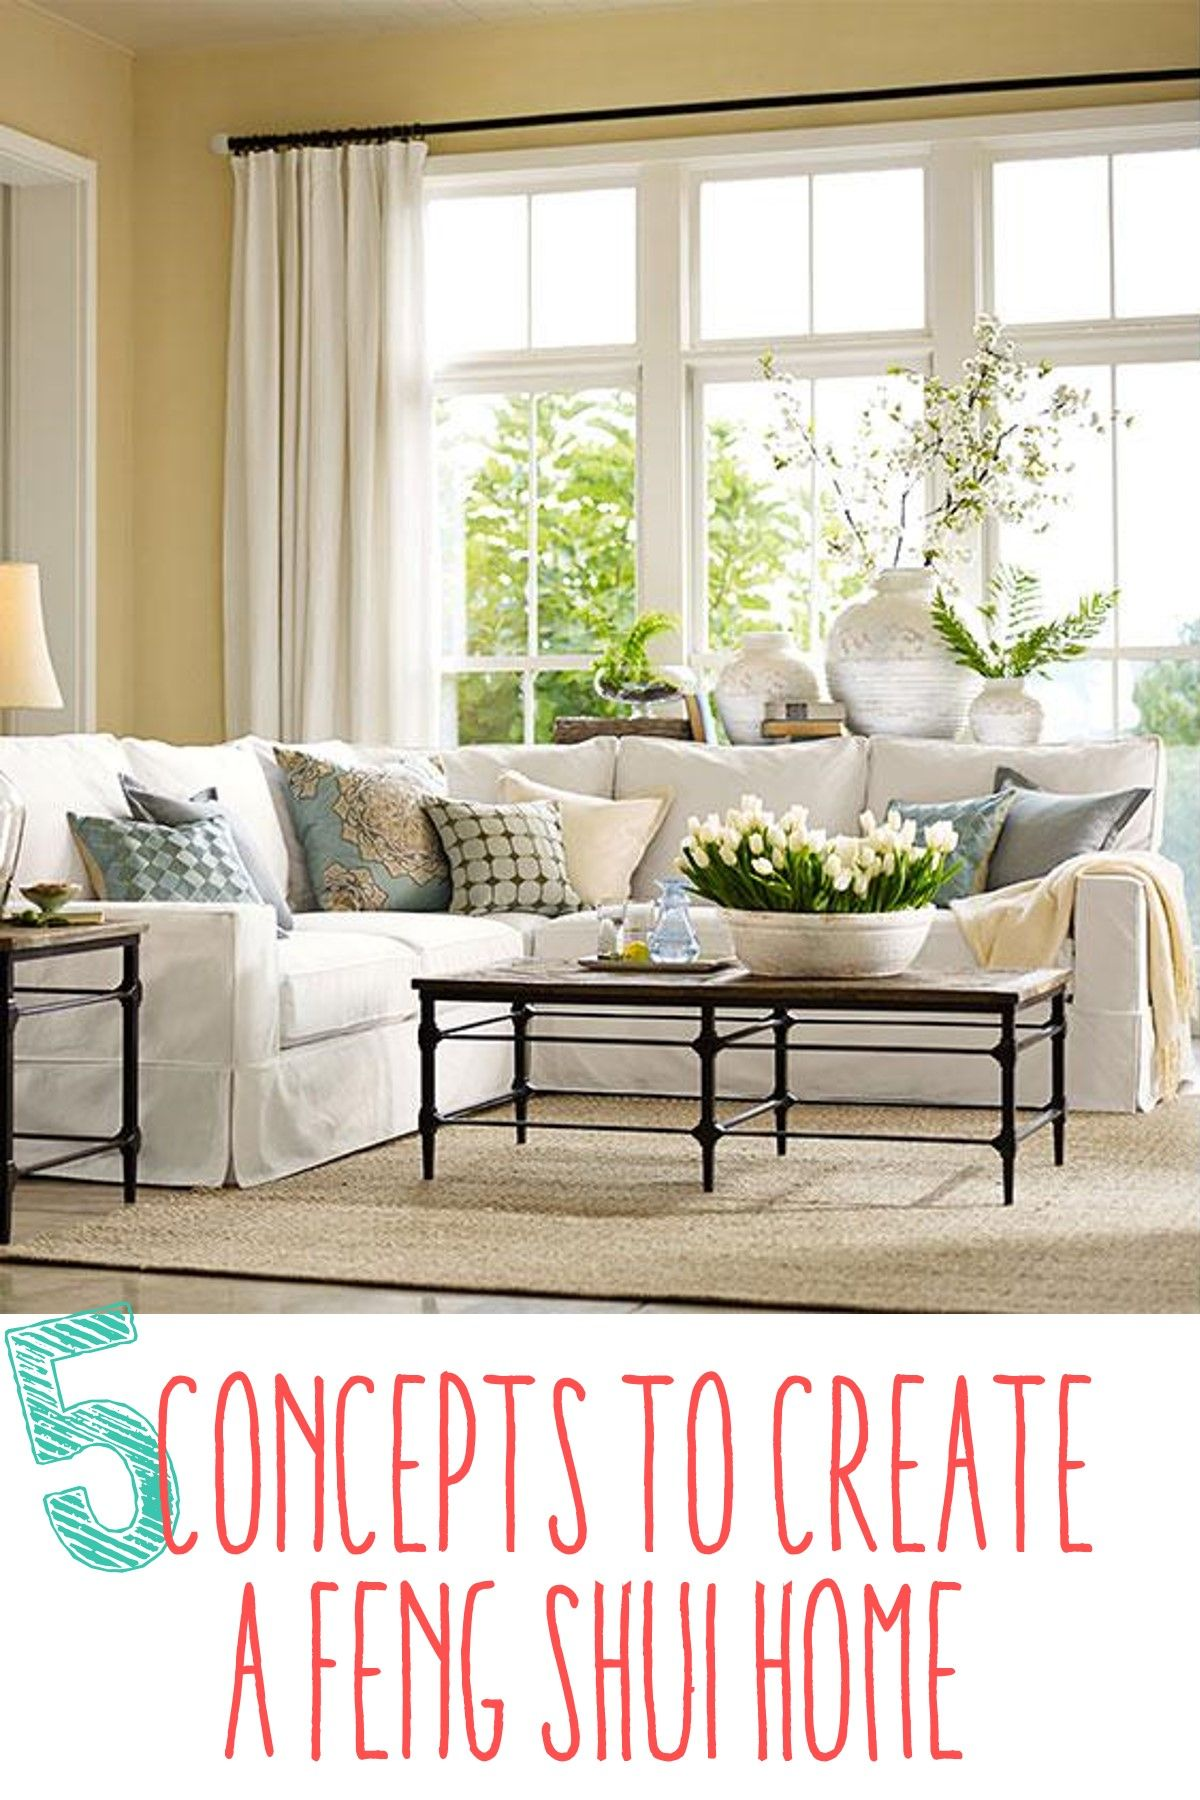 Design 3 People Room: 5 Concepts To Create A Feng Shui Home